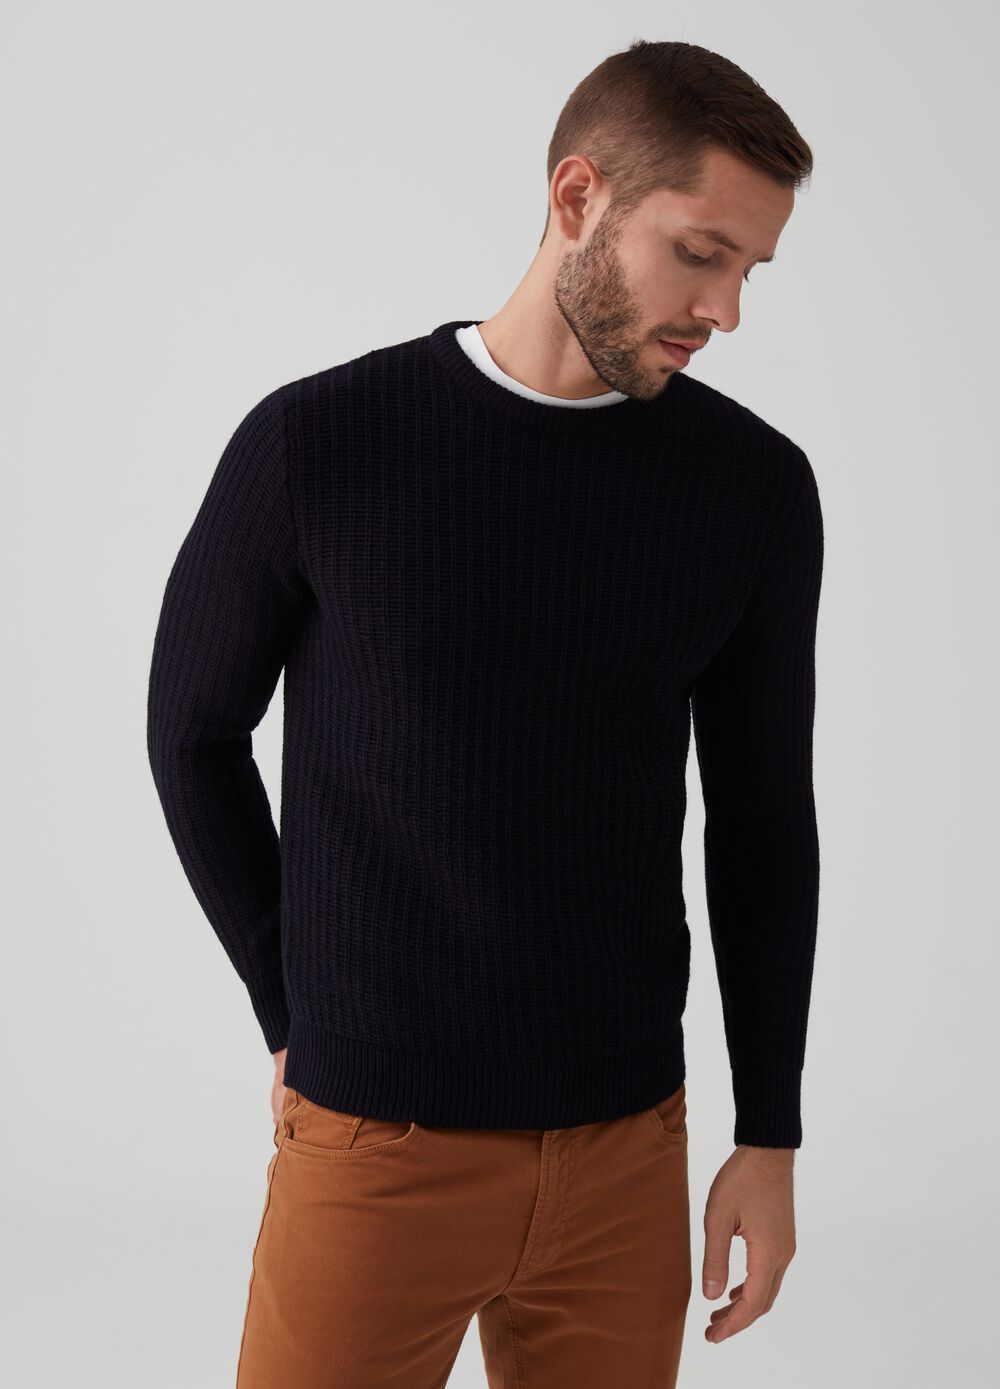 Pullover with knitted wool and round neck